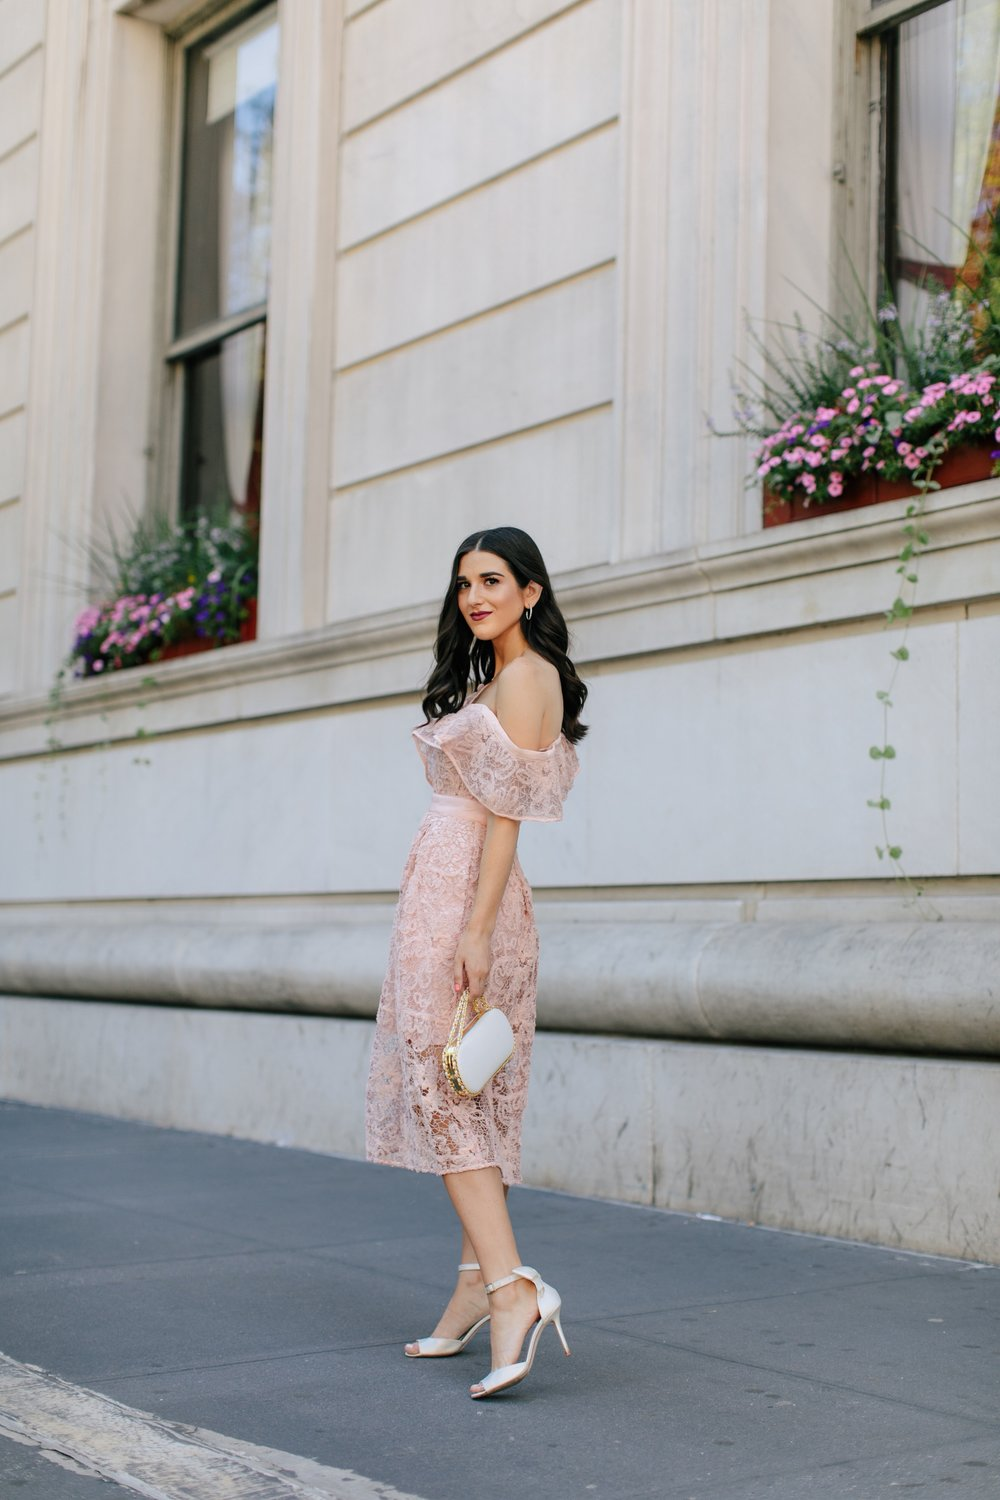 A New Perspective On Instagram Jealousy Pink Lace Dress Ivory Bow Heels Esther Santer Fashion Blog NYC Street Style Blogger Outfit OOTD Trendy White Bag Clutch Self Portrait Designer Kate Spade Wedding Shoes Fancy Elegant Wear Feminine Formal Shopping.jpg